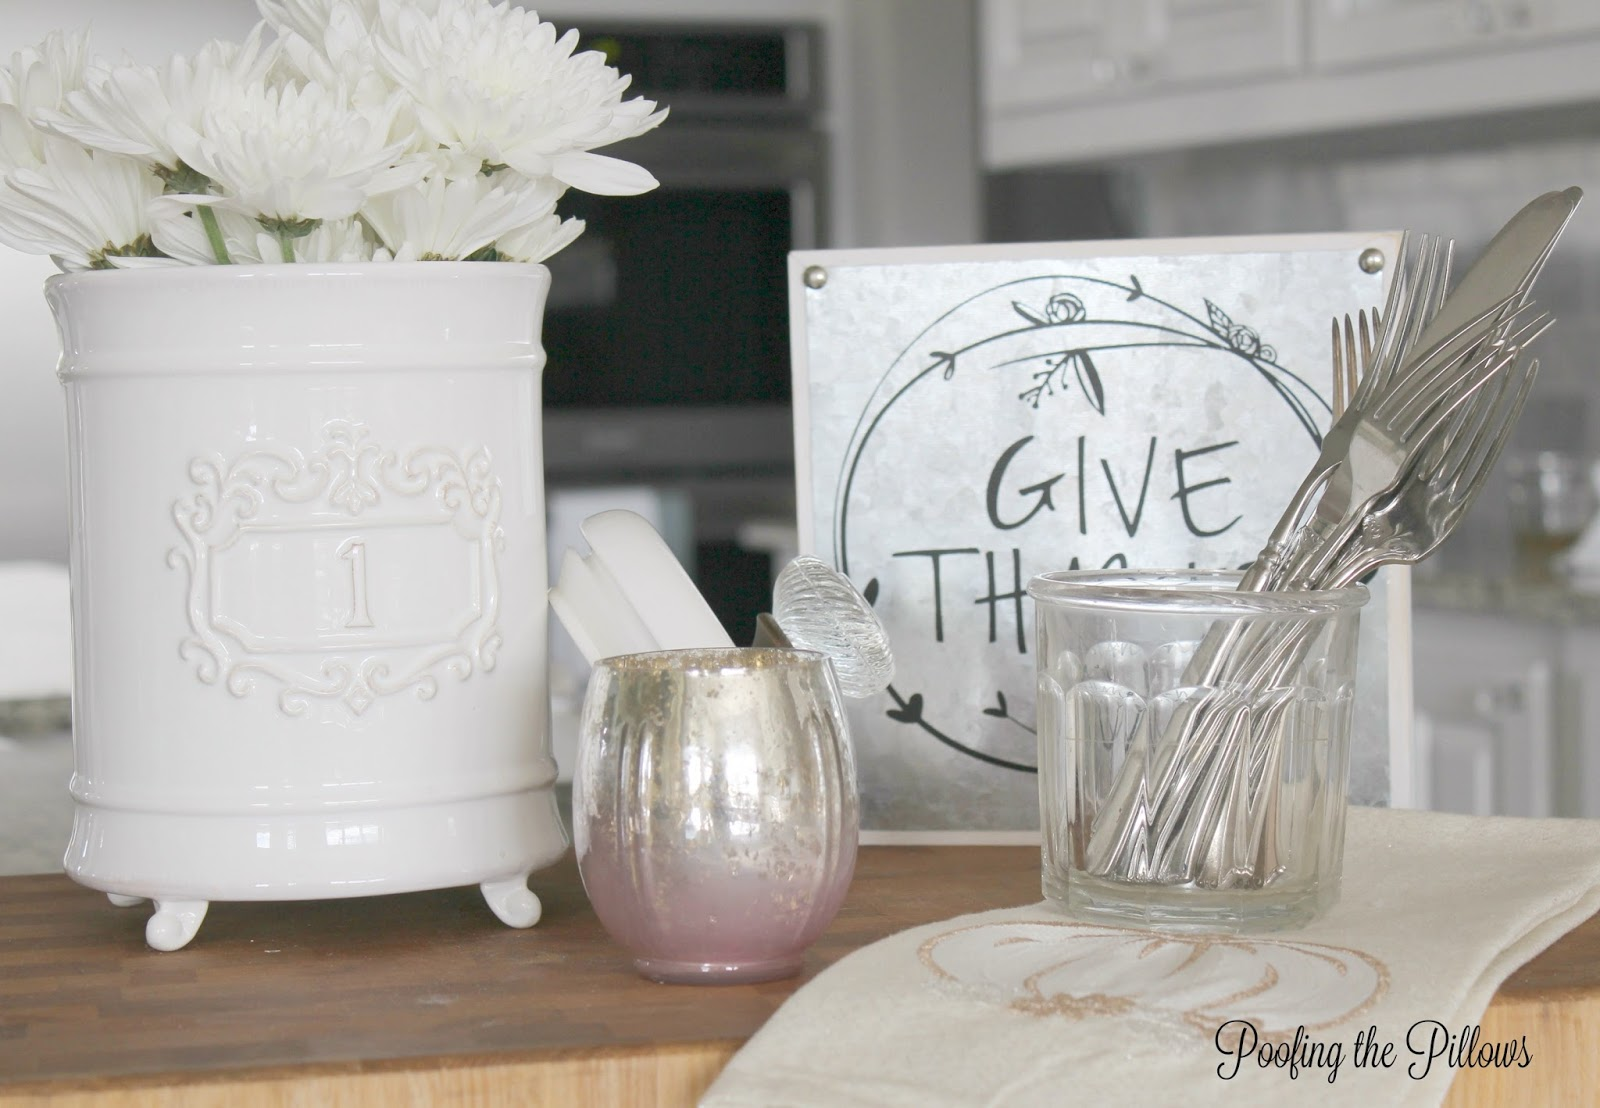 A kitchen vignette created as part of Ten on the 10th where bloggers share ideas for life that cost less than $10.